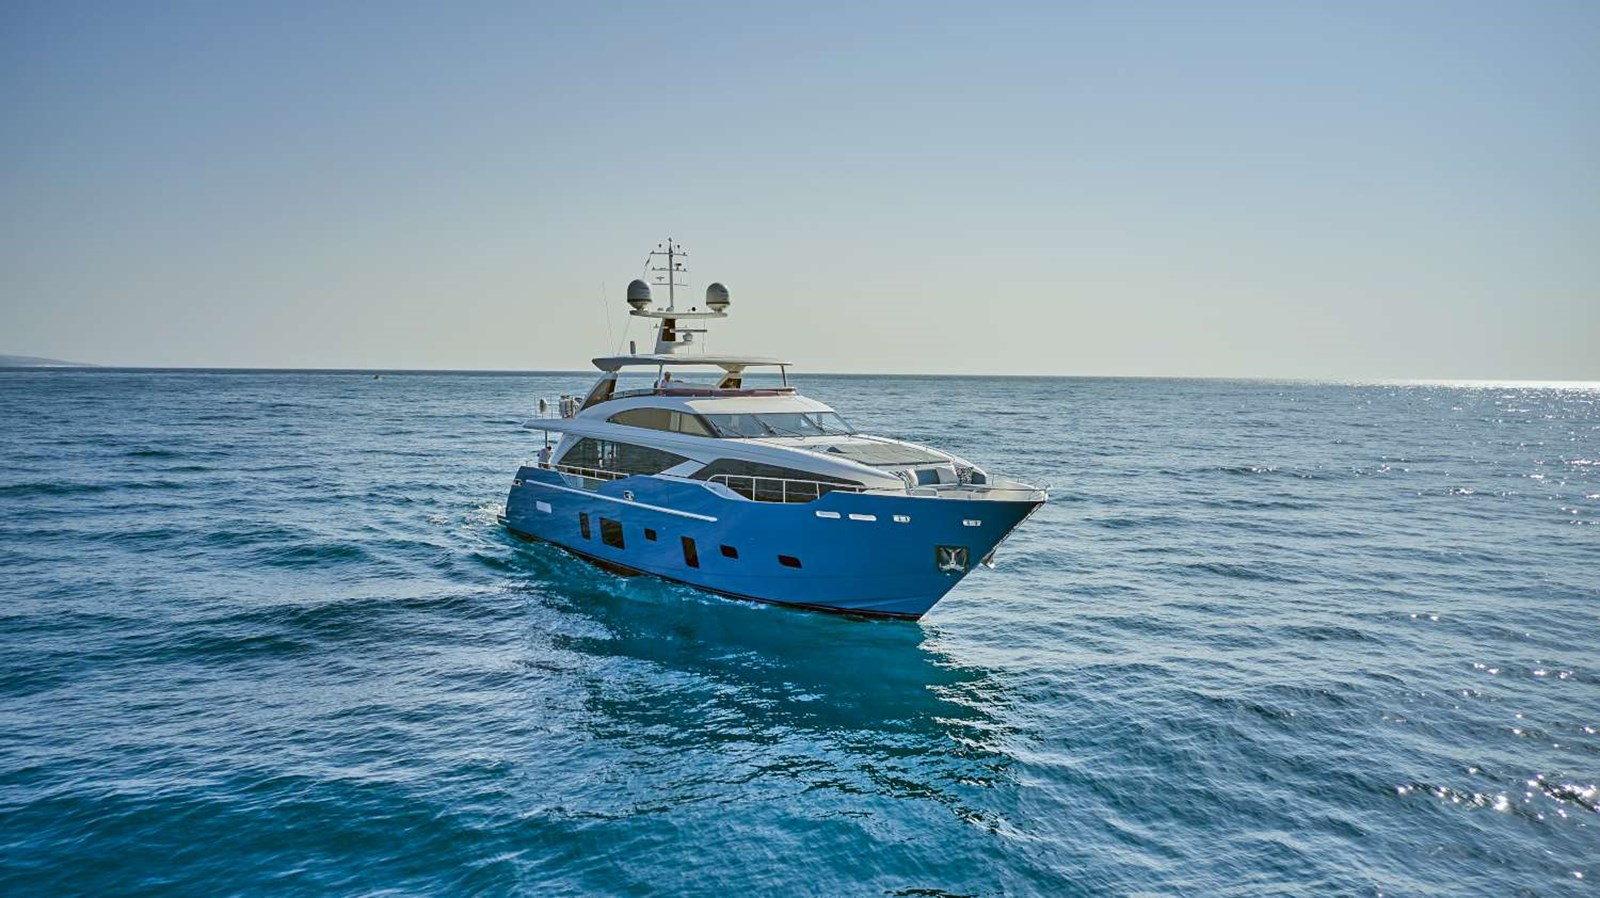 DJI_0345- Marzena gae of thrones editorial Hallelujah 2019 PRINCESS YACHTS 30M Motor Yacht 2927508